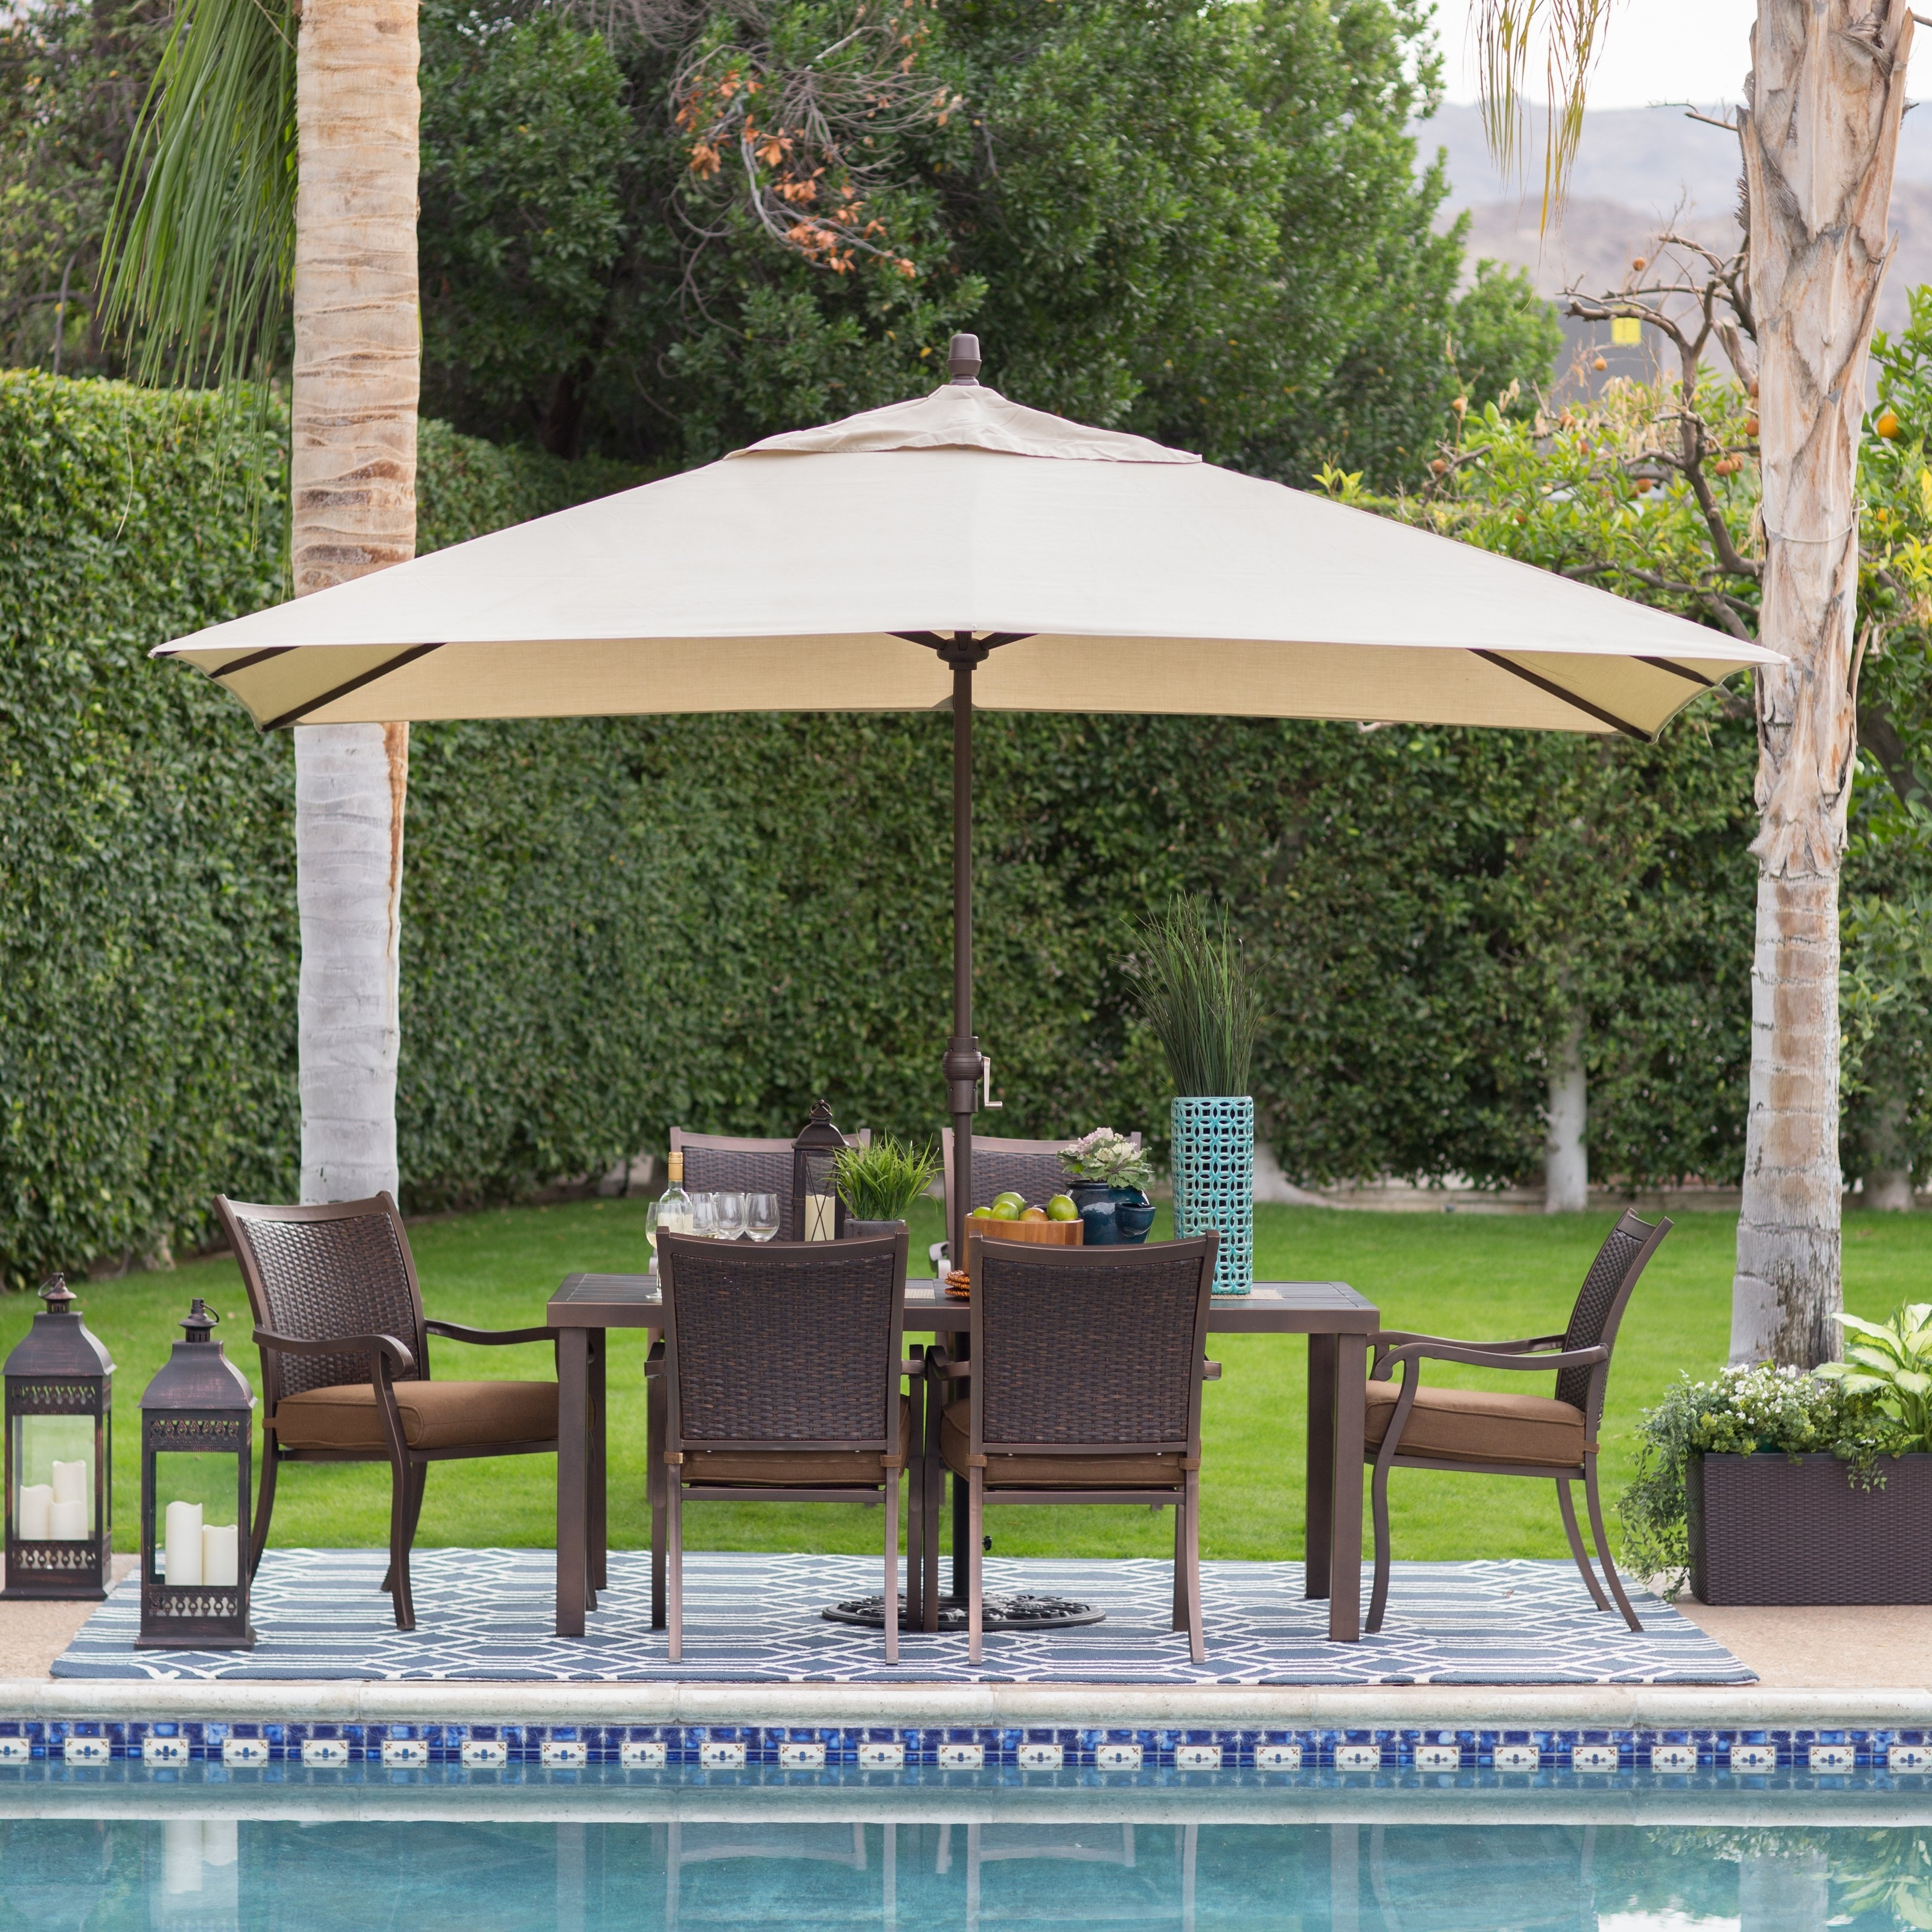 Patio Deck Umbrellas With Regard To Fashionable Garden: Enchanting Outdoor Patio Decor Ideas With Patio Umbrellas (View 14 of 20)